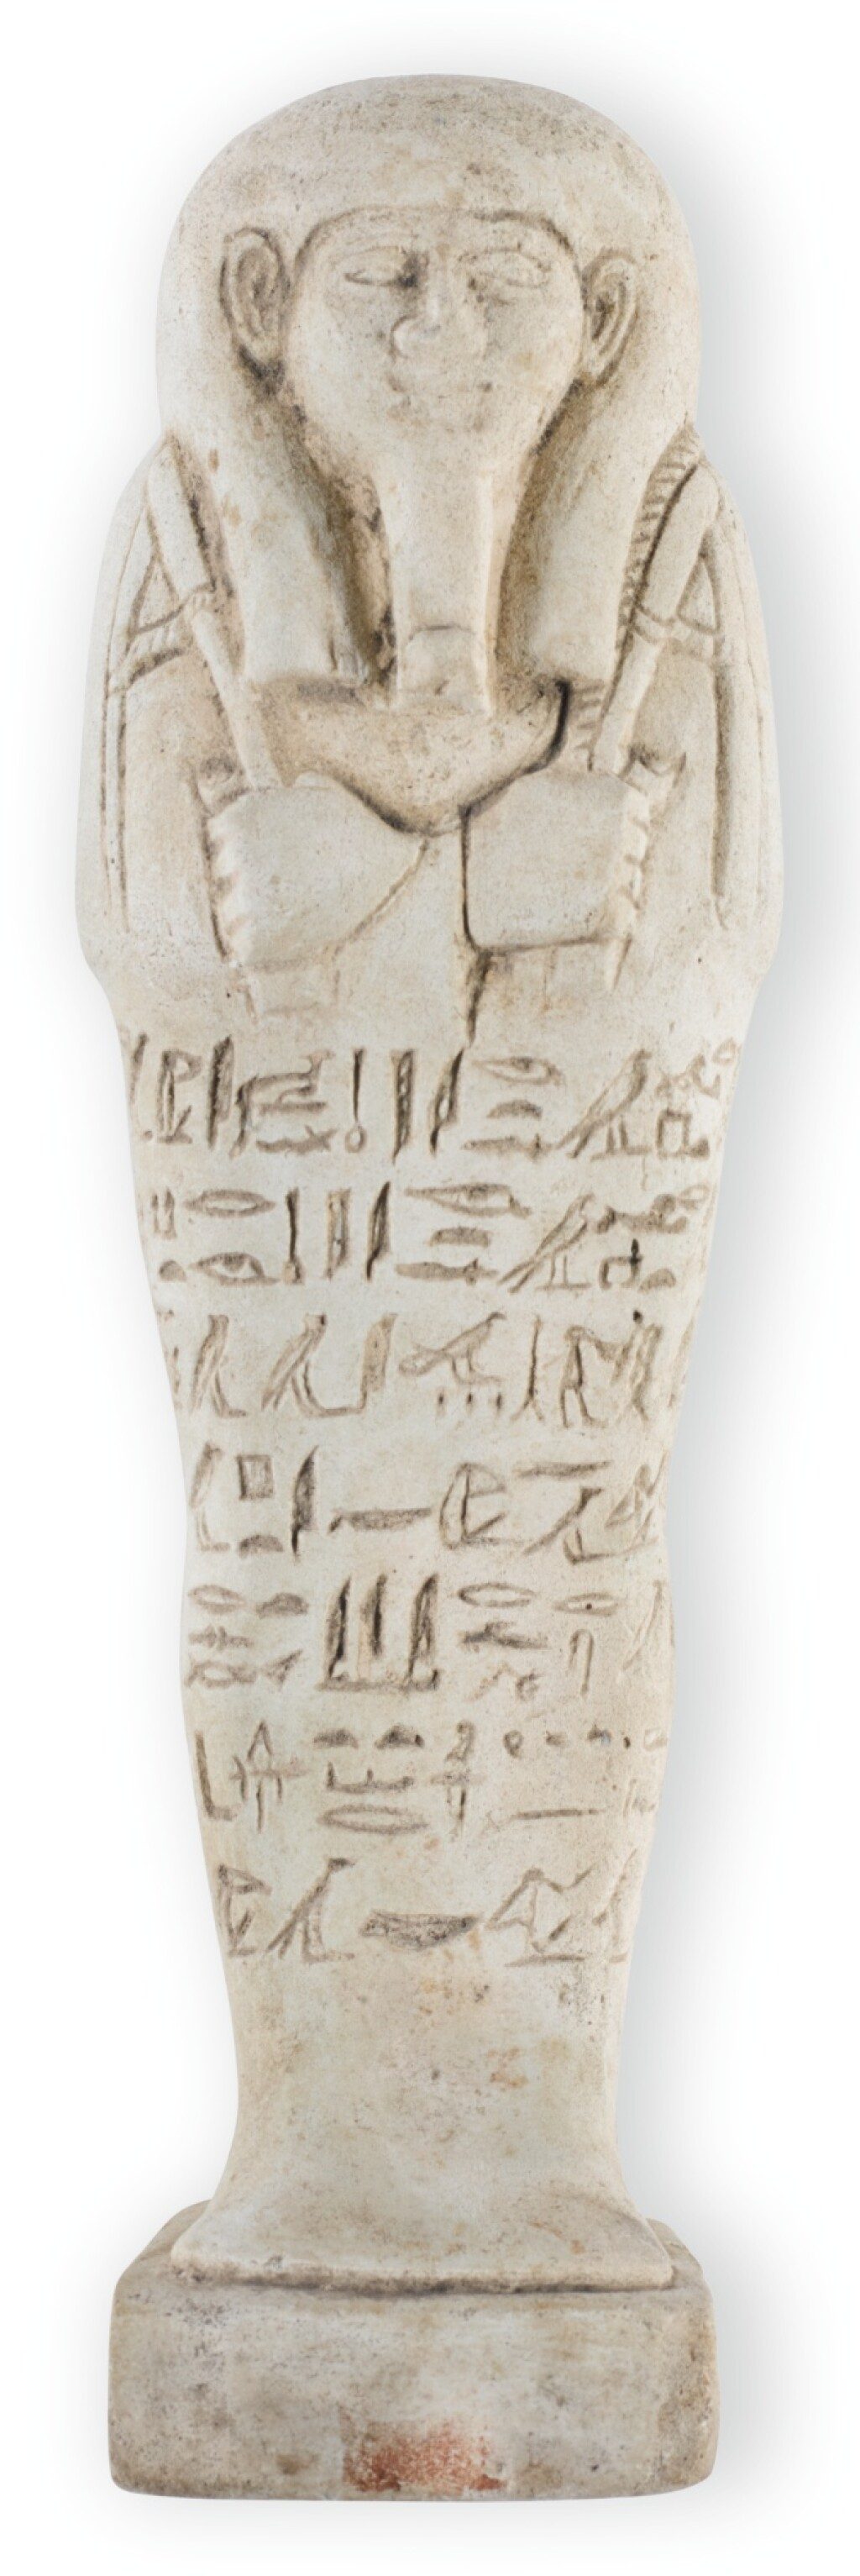 AN EGYPTIAN FAIENCE USHABTI, 26TH DYNASTY, CIRCA 664-525 B.C.